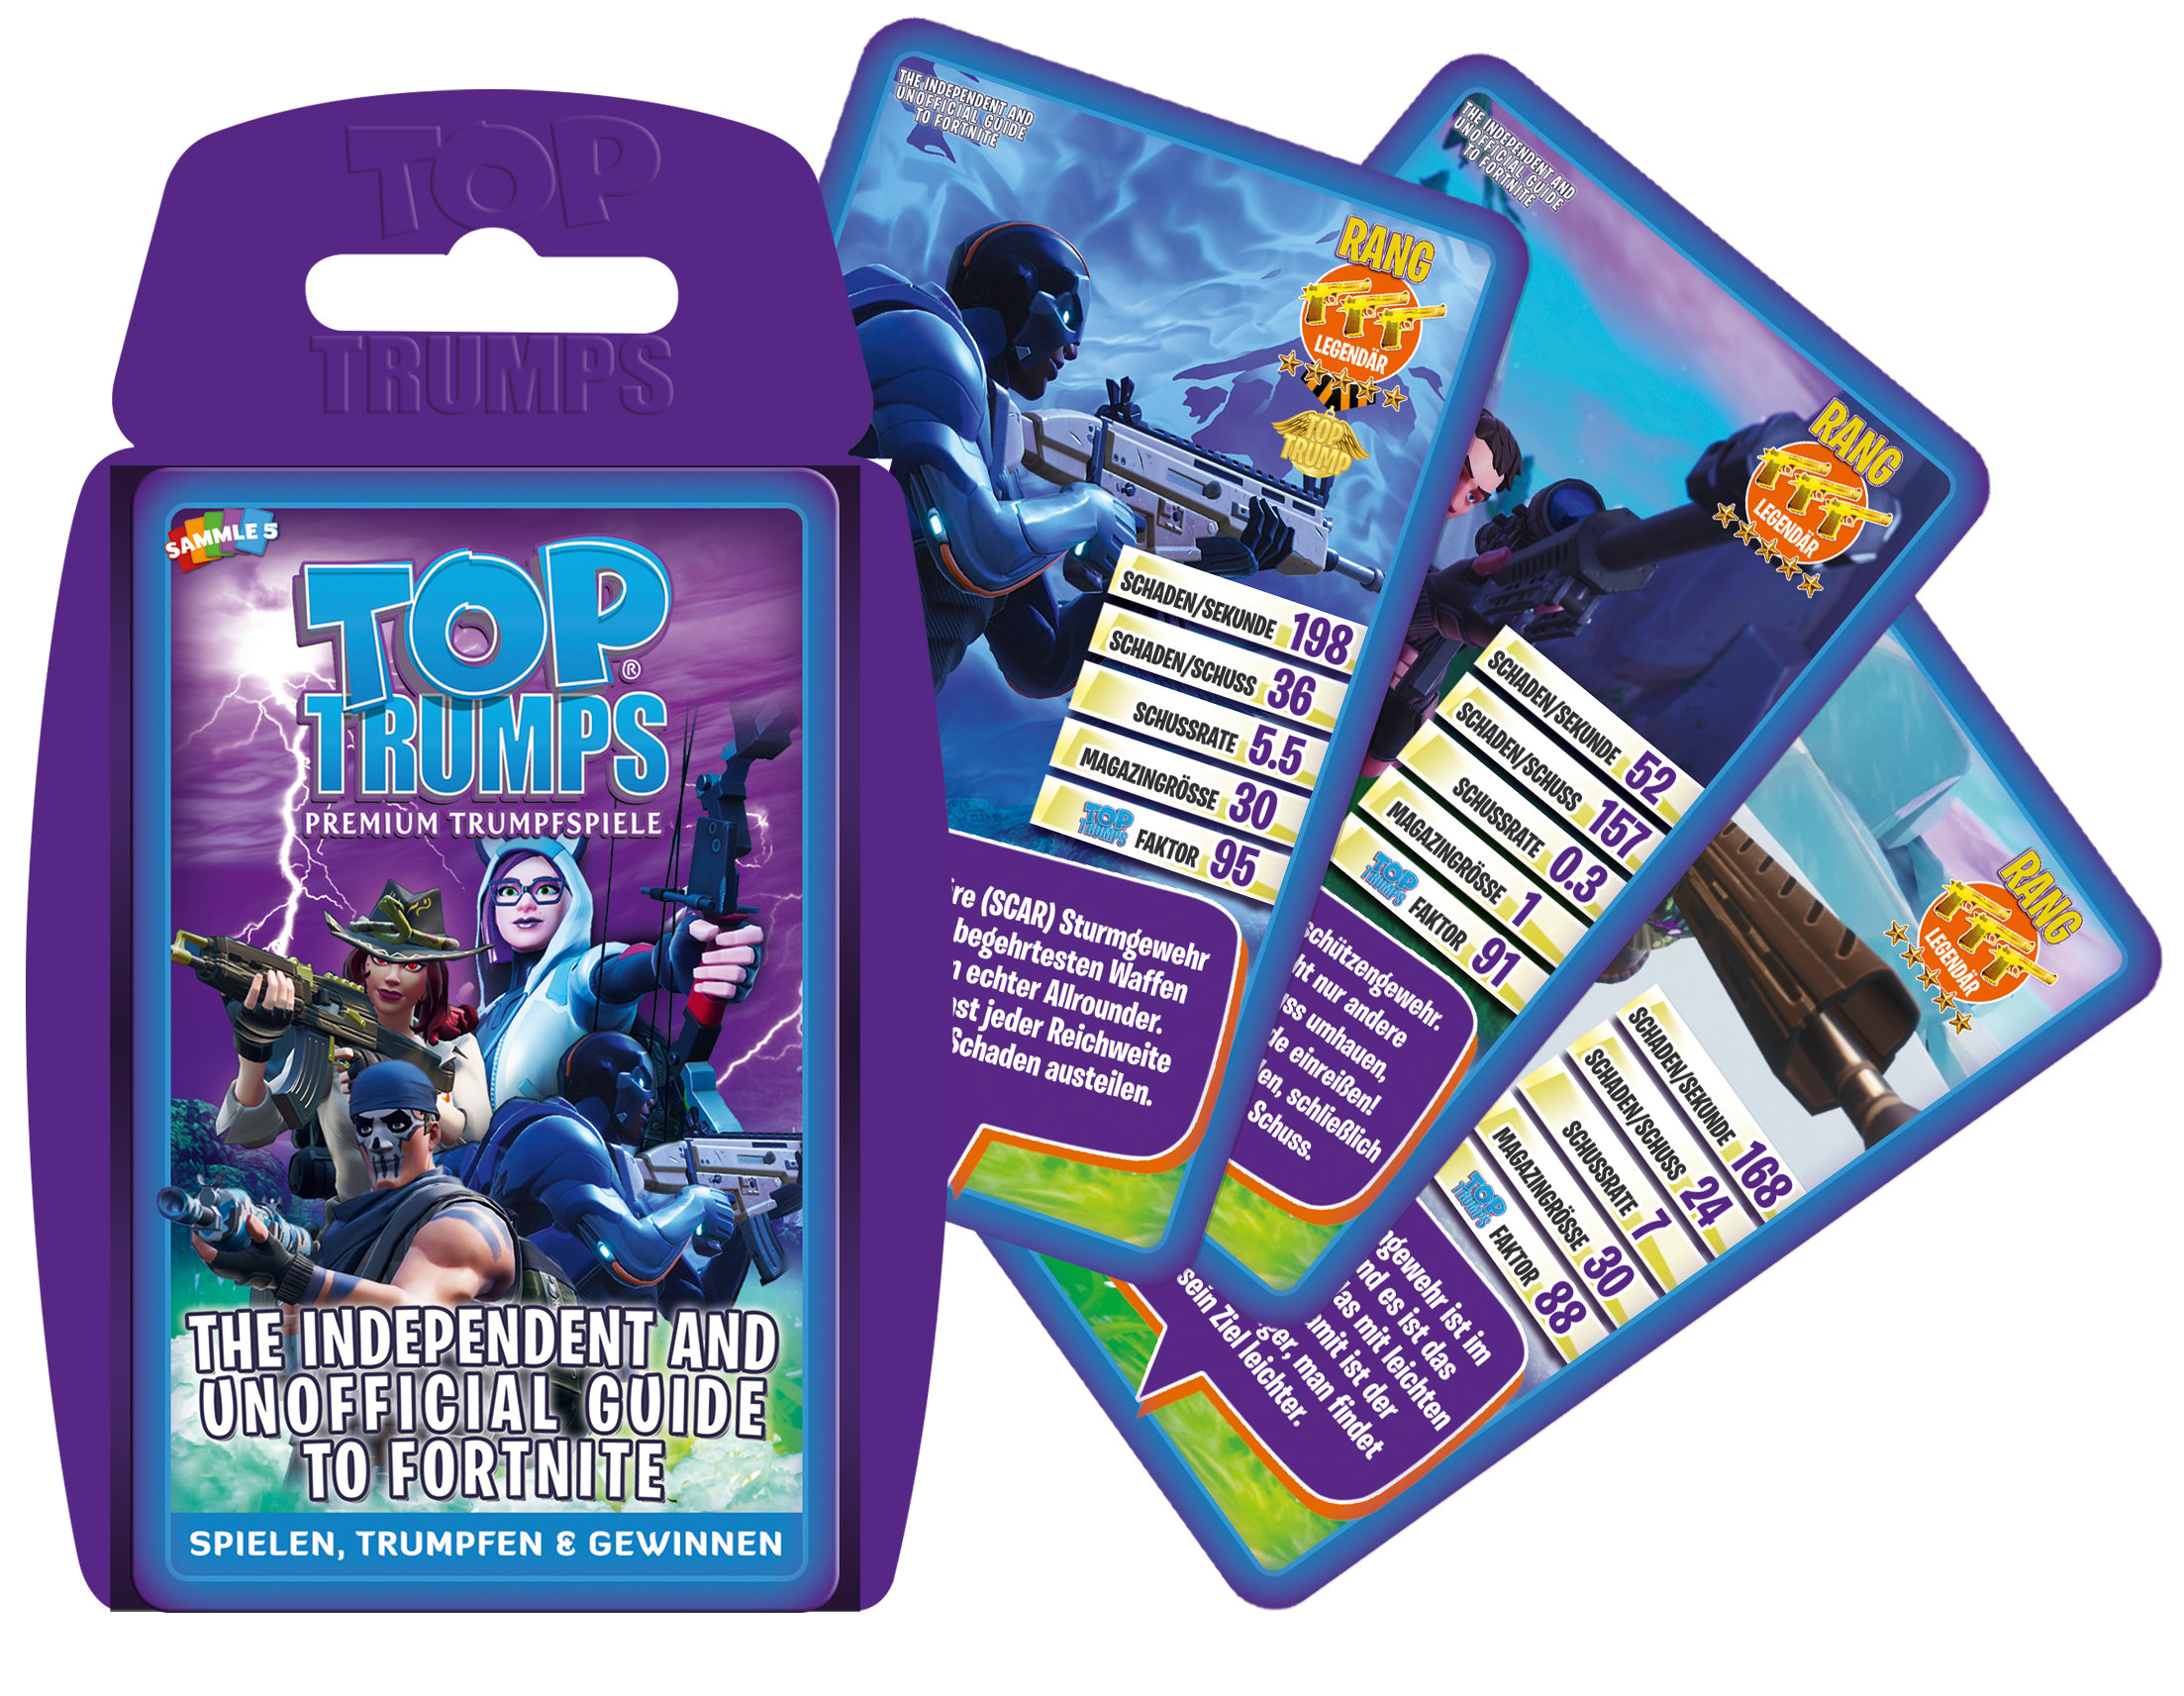 Top Trumps The Independent and Unofficial Guide to Fortnite